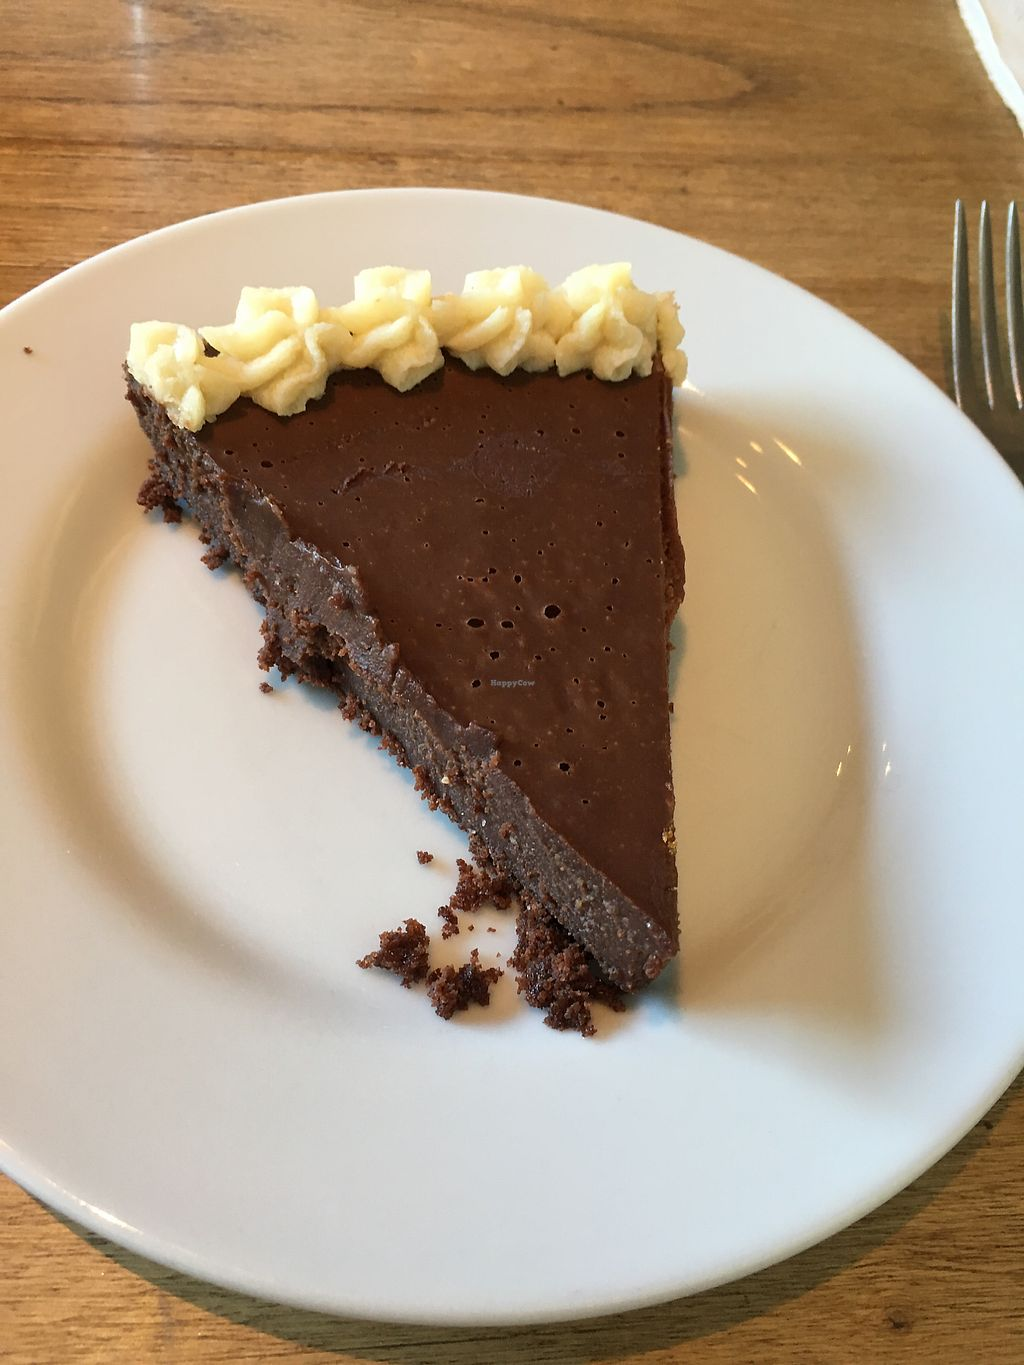 """Photo of VITA - Palermo  by <a href=""""/members/profile/Madball1979"""">Madball1979</a> <br/>Chocolate mousse in Buenos Aires  <br/> November 14, 2017  - <a href='/contact/abuse/image/57364/325814'>Report</a>"""